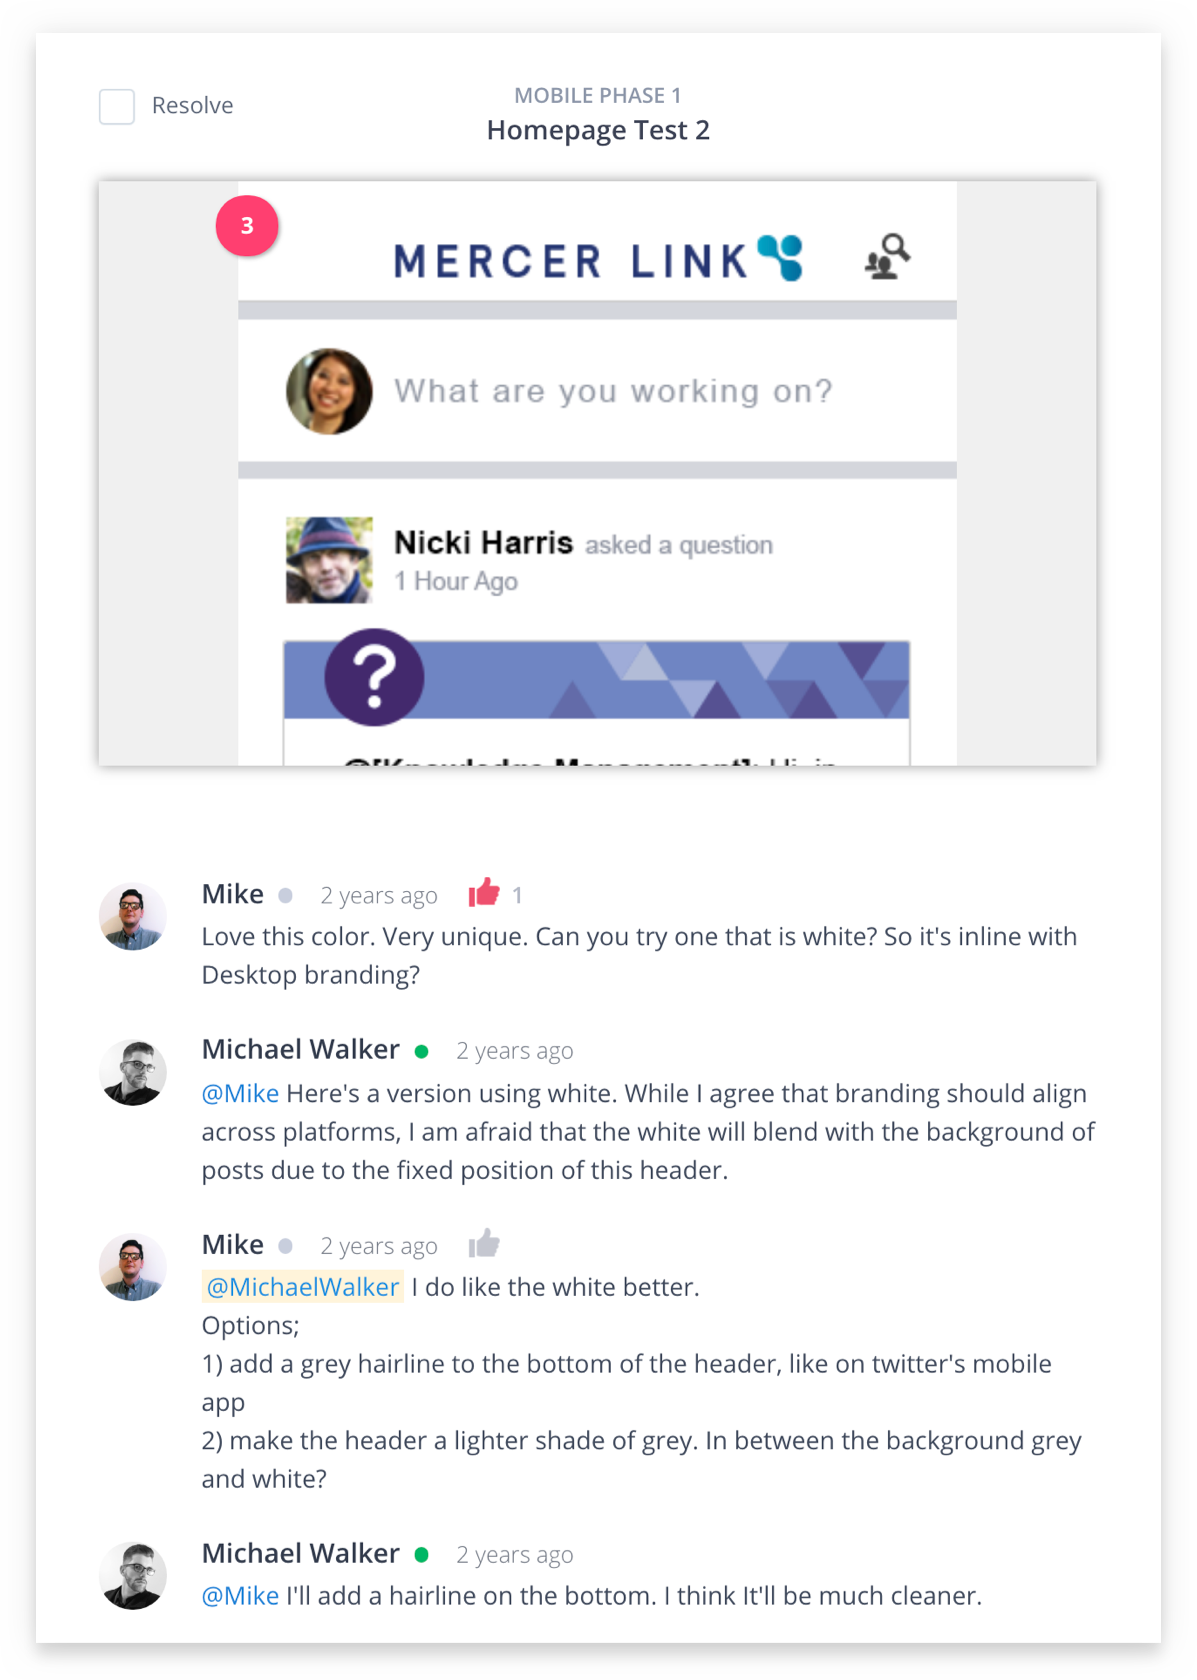 Image 9: The platform manager and I considered even minor details, such as the color of elements. We wanted the app to align with company branding and be as easy to use as possible.